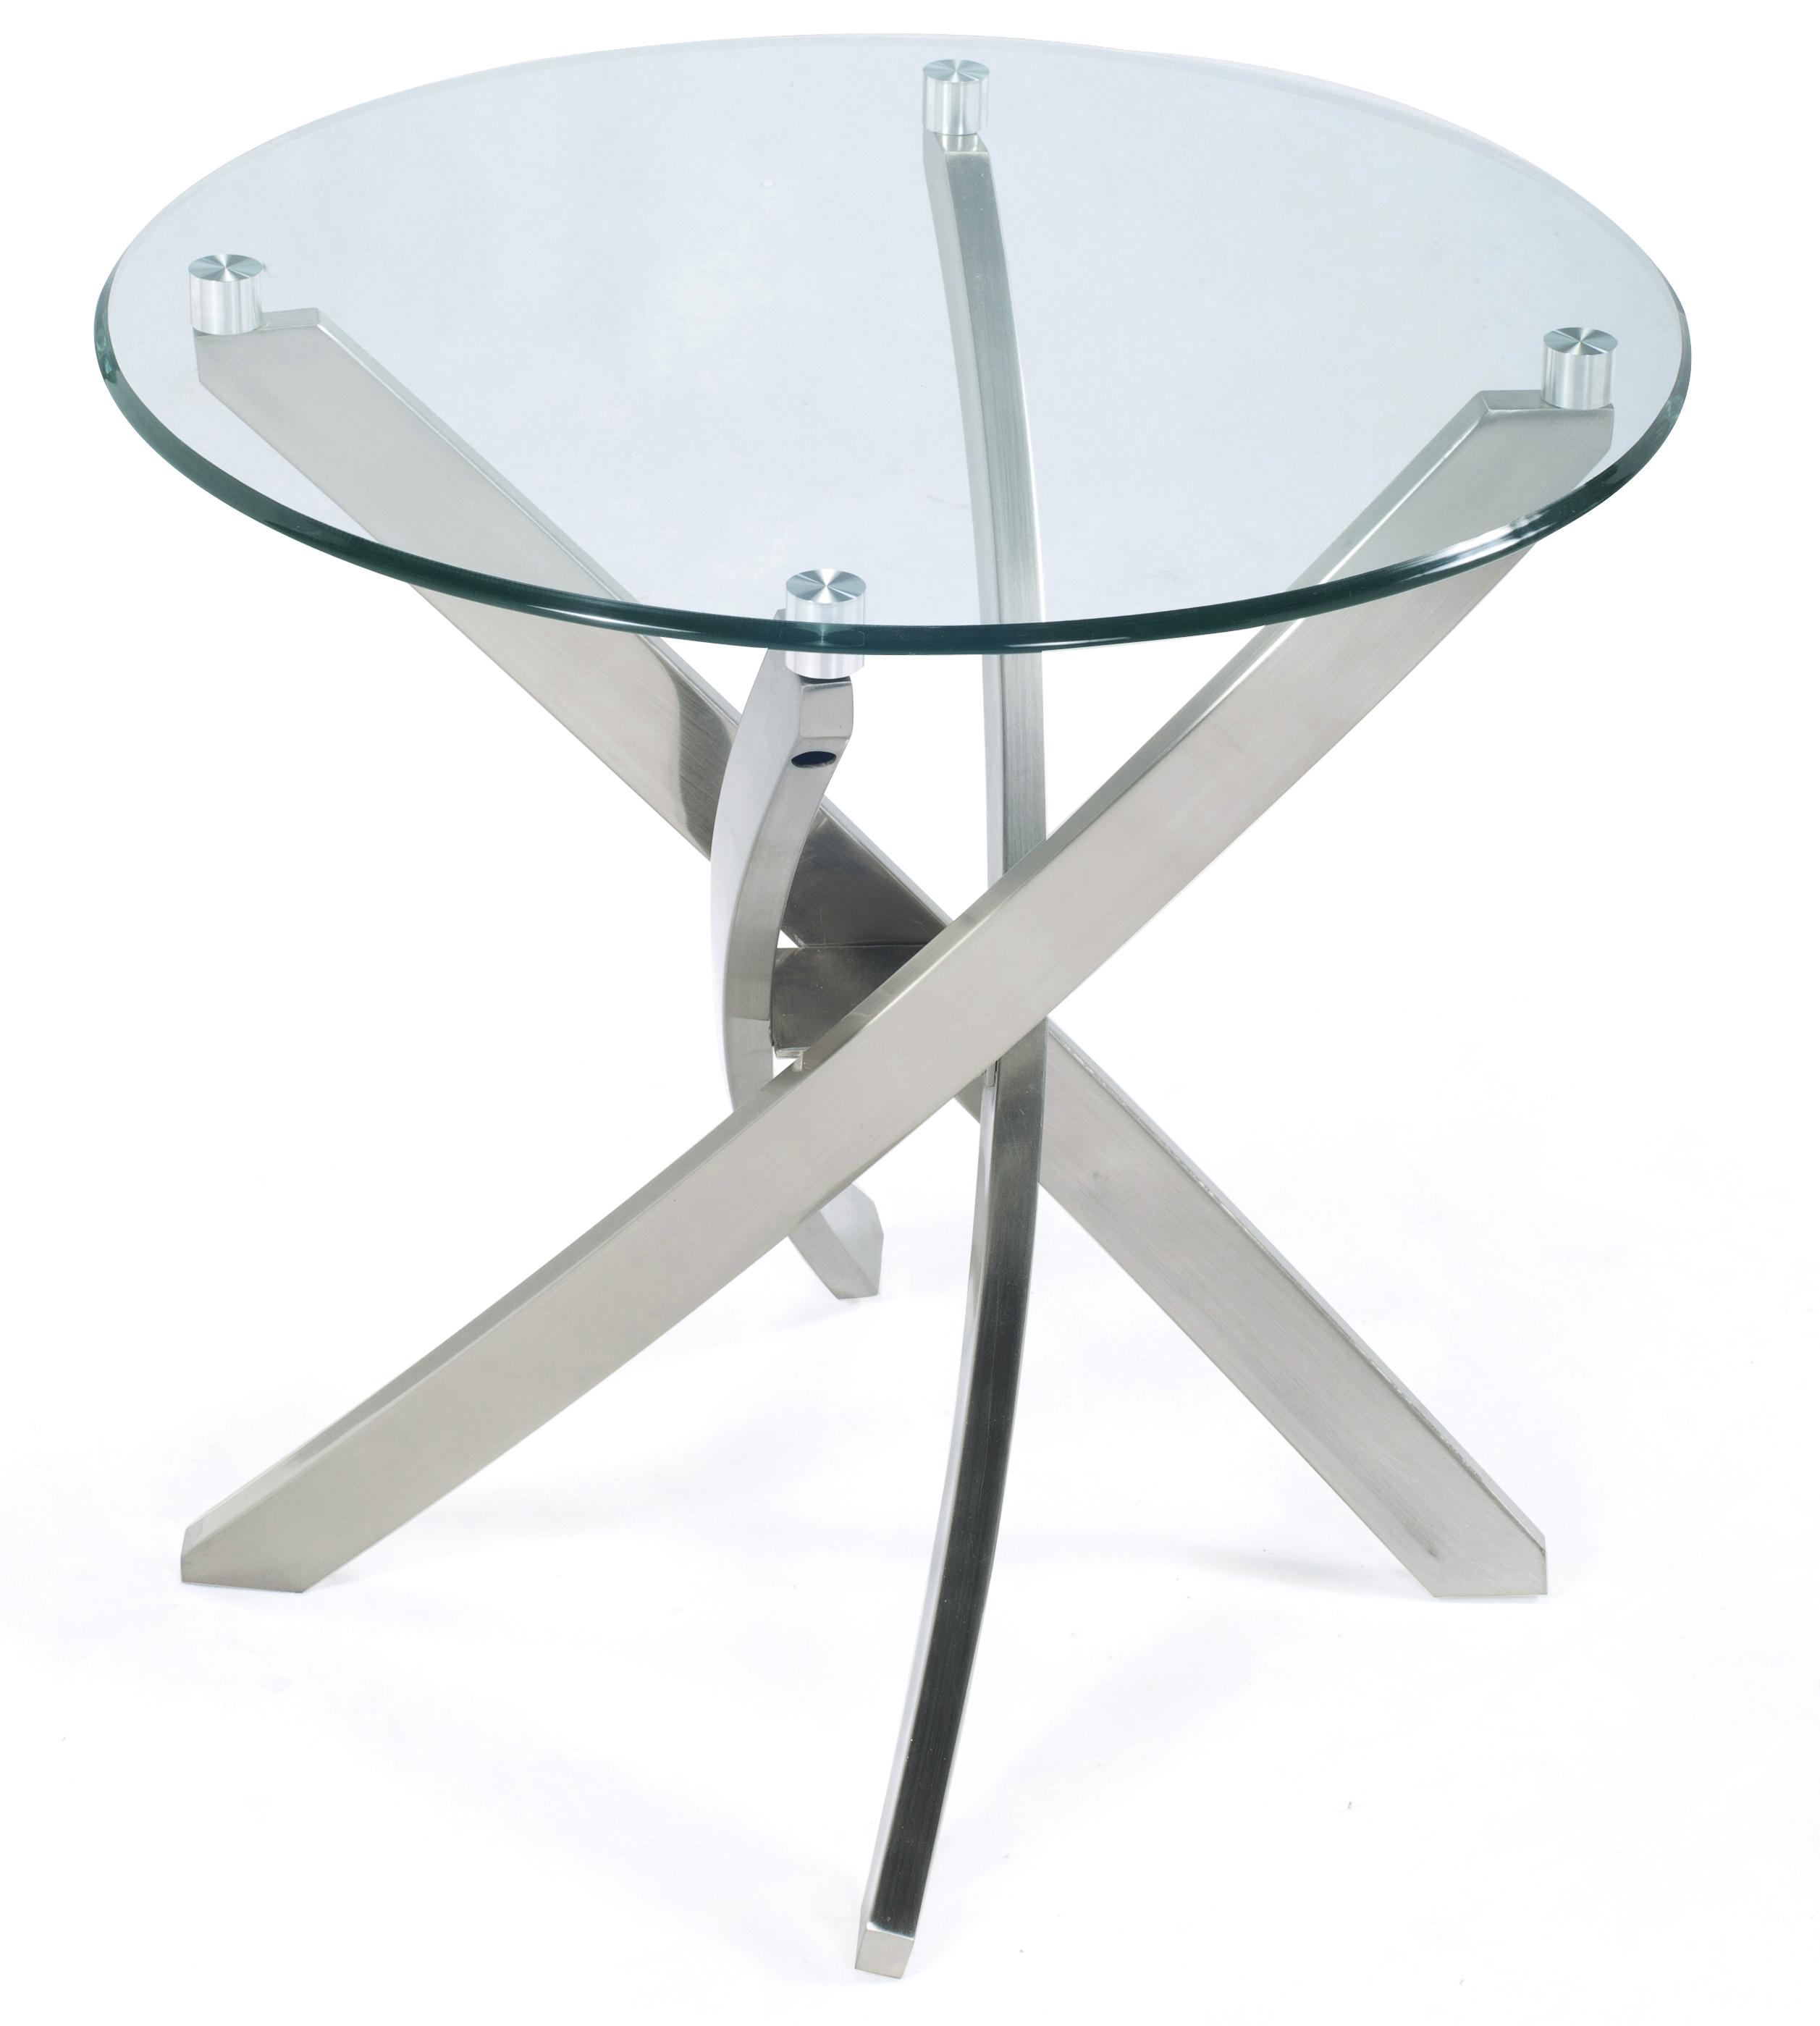 Round End Table with Strut Base and Tempered Glass Top